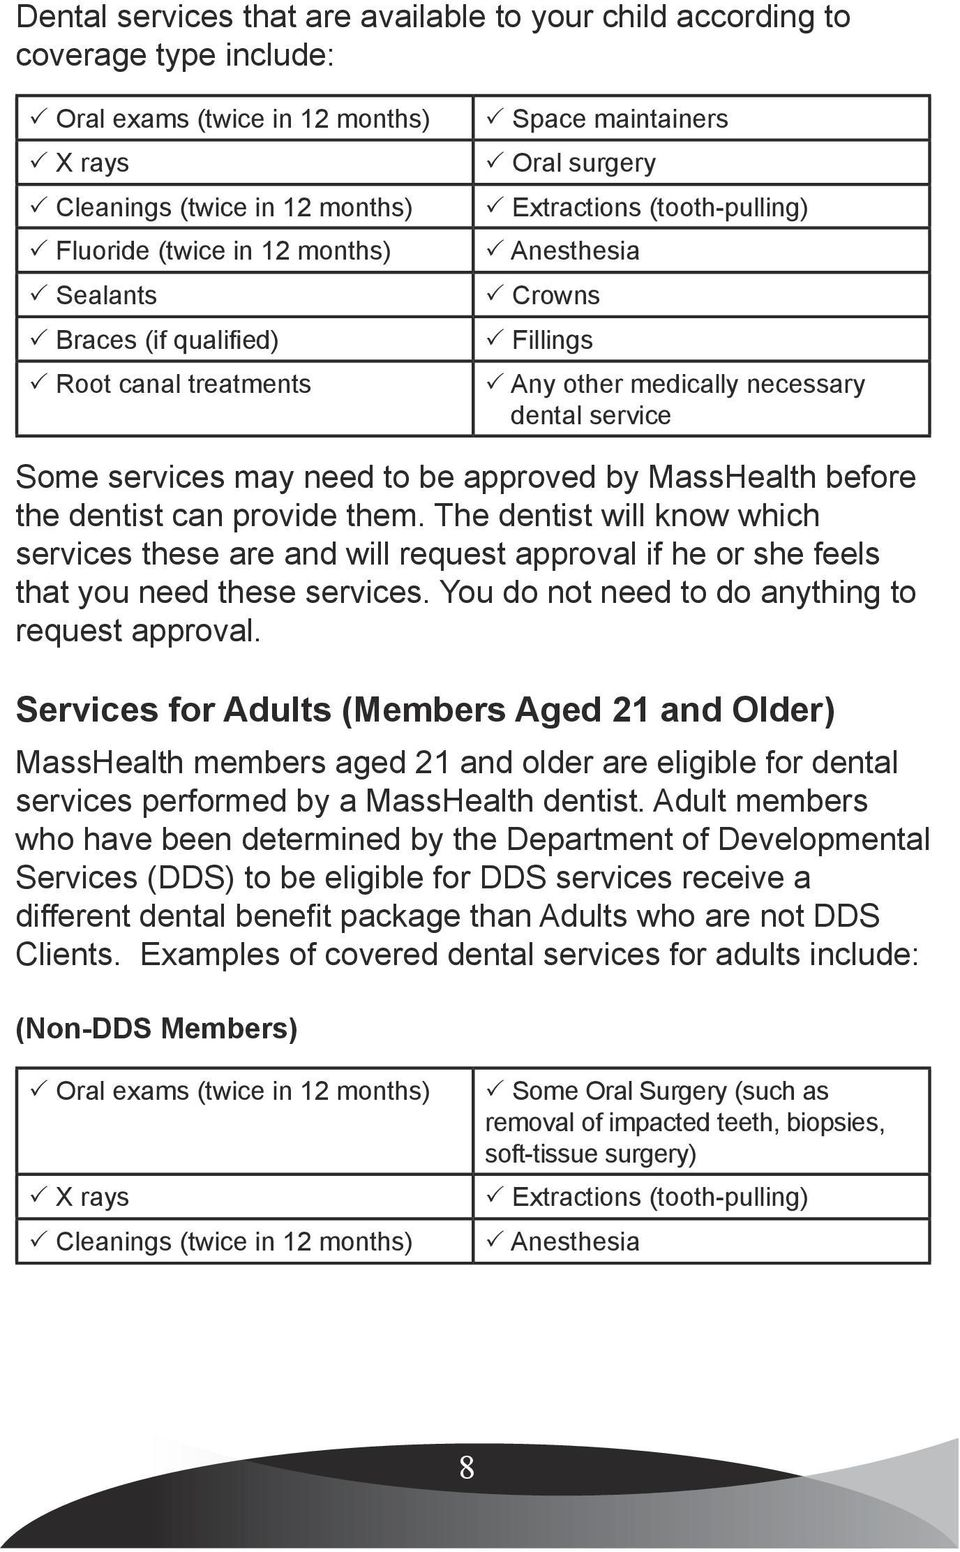 to be approved by MassHealth before the dentist can provide them. The dentist will know which services these are and will request approval if he or she feels that you need these services.